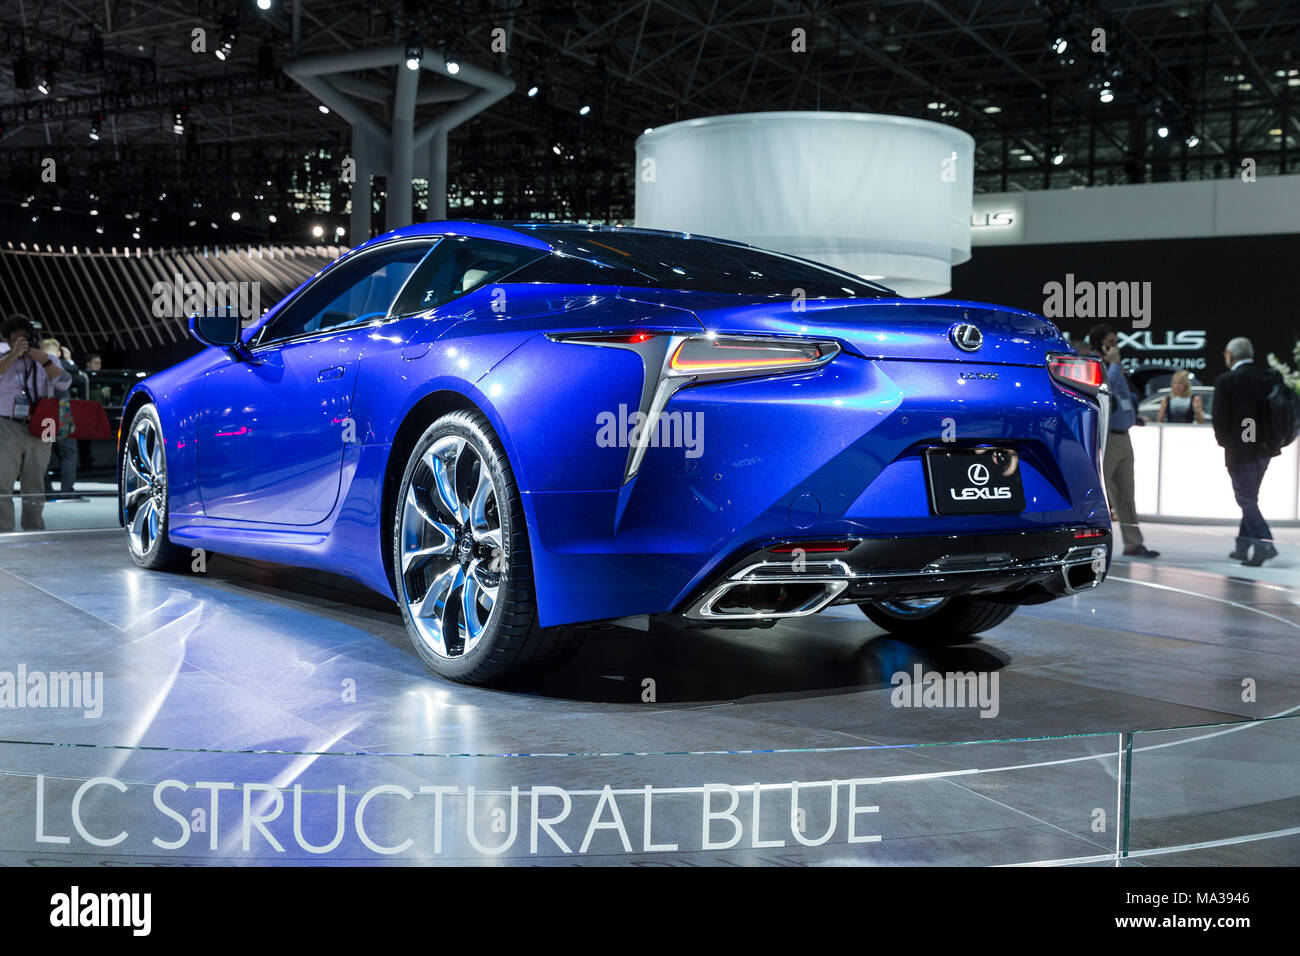 Lexus LC LC Structural Blue Coupe On Display At New York - Jacob javits center car show 2018